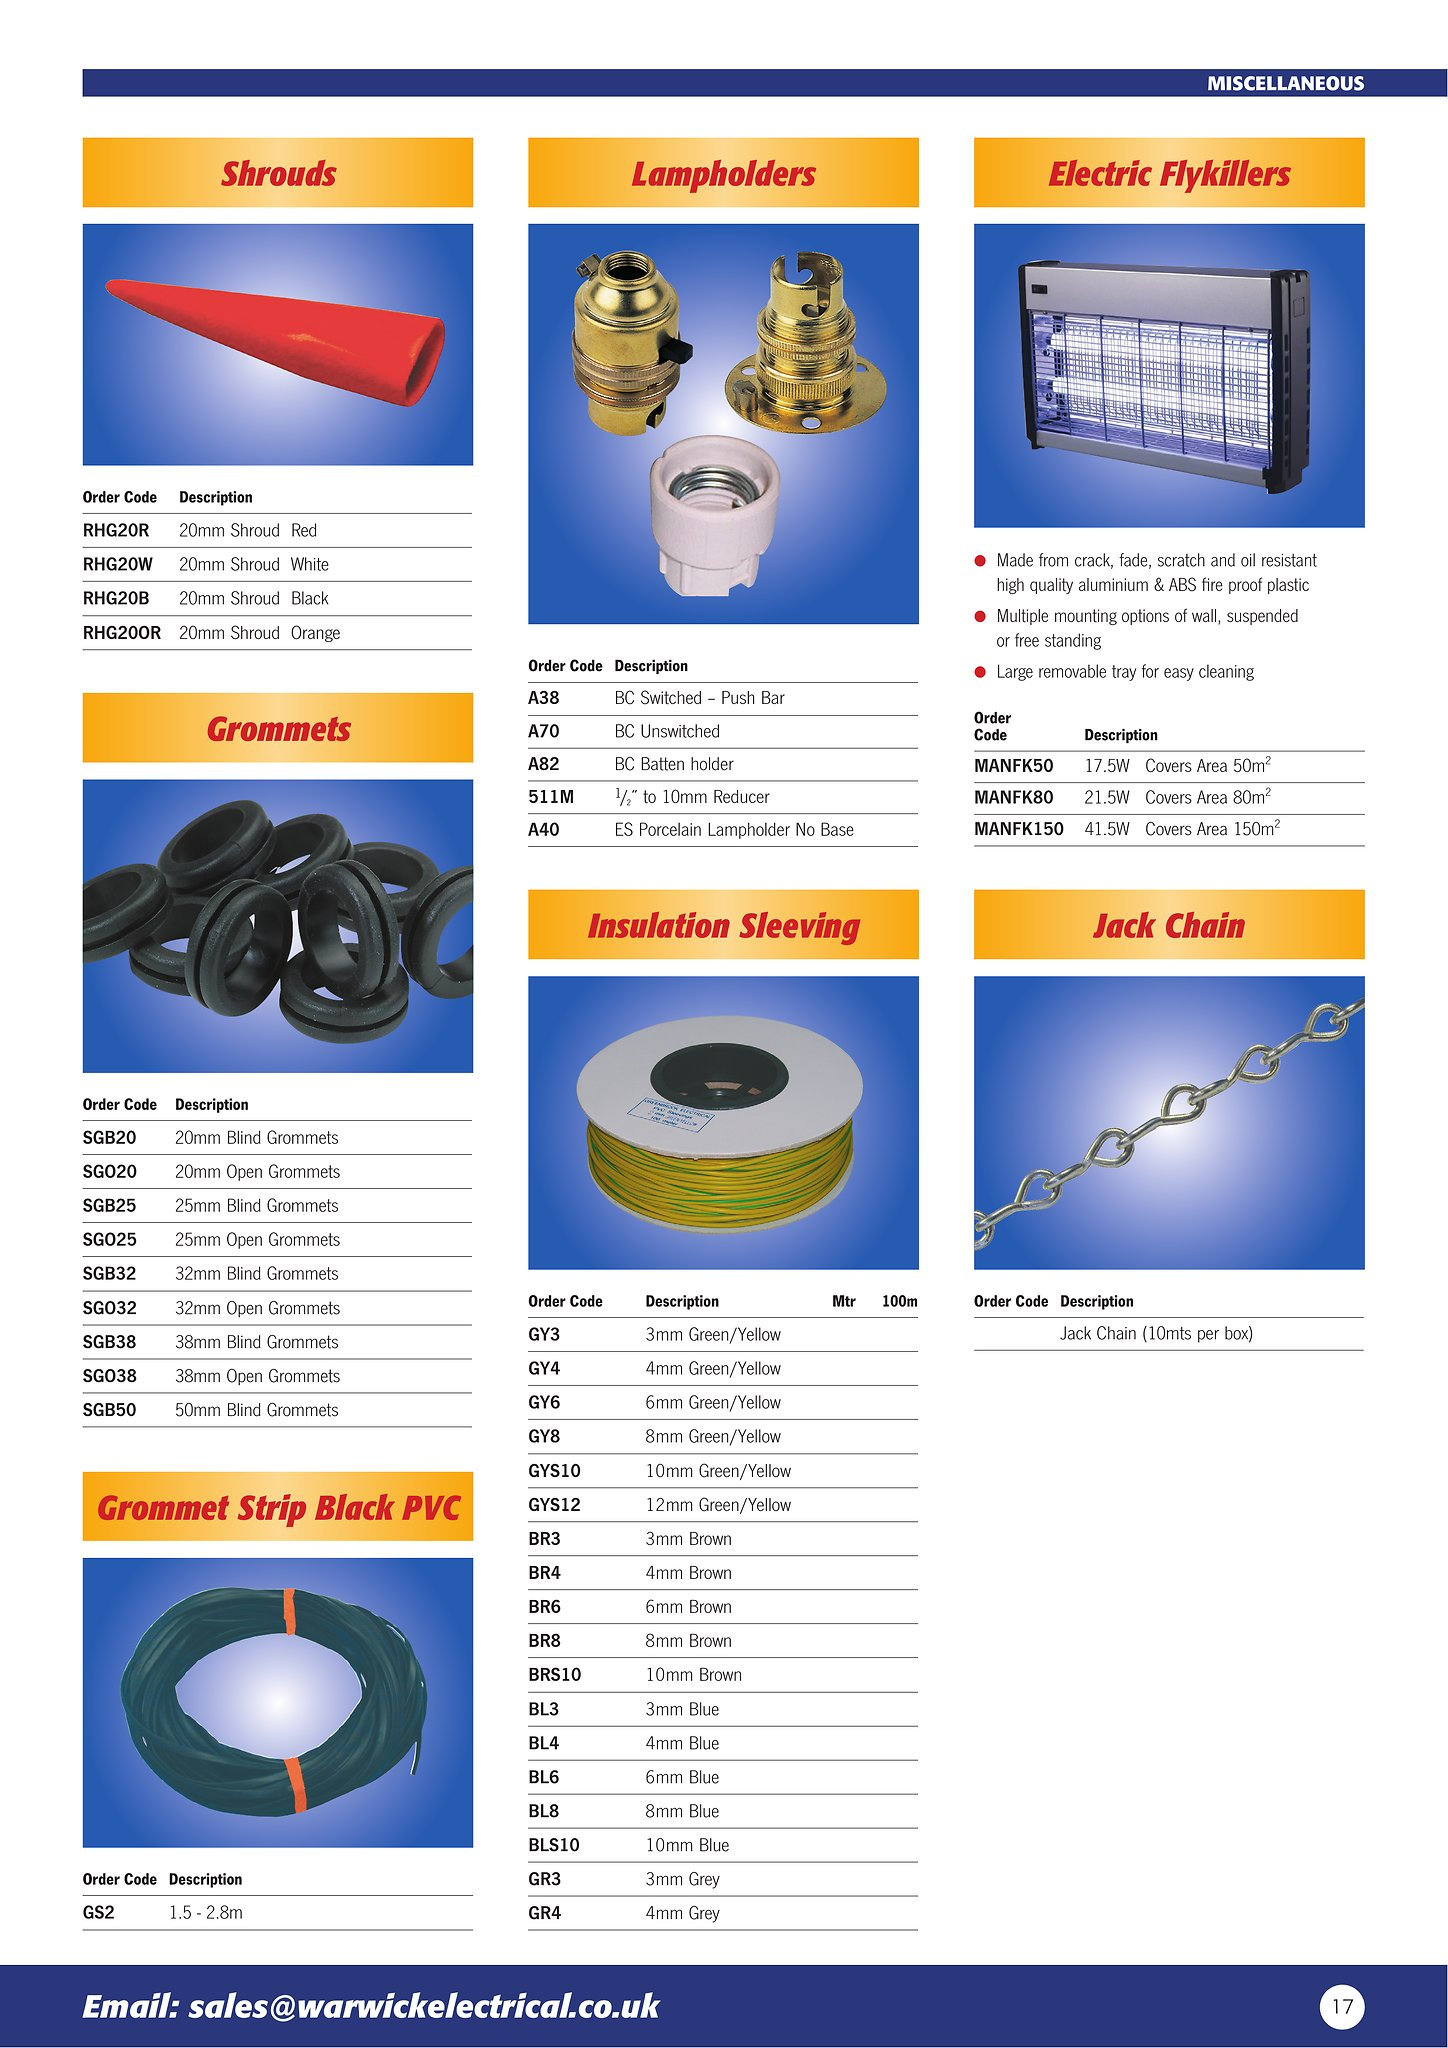 Warwick Electrical Catalogue 2018 - Catalog - Page 17